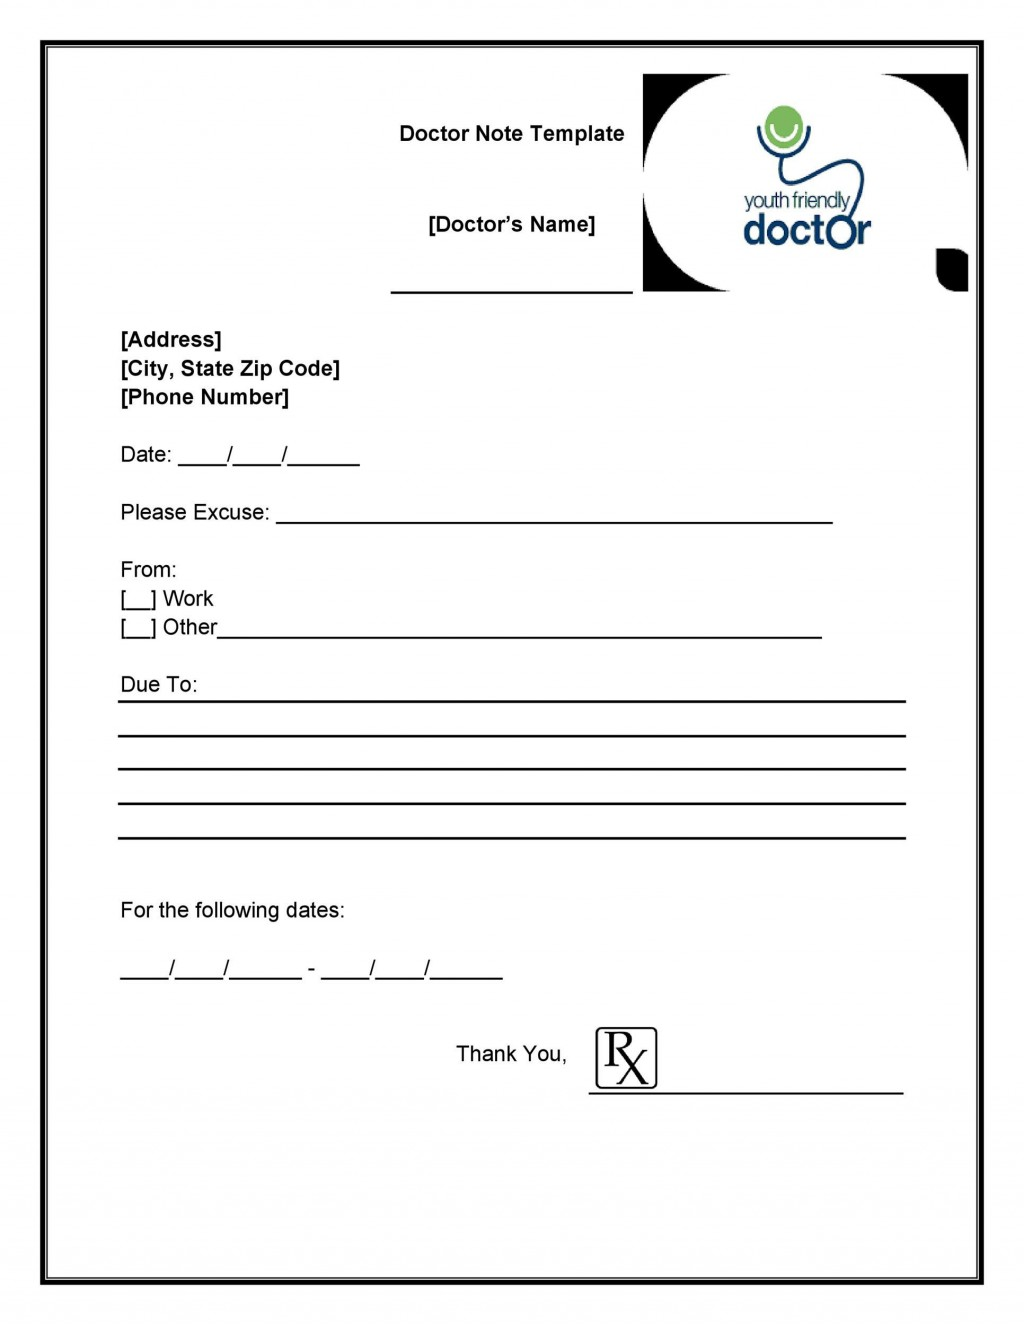 003 Marvelou Free Doctor Note Template For Work Concept  Printable Editable Fake PdfLarge